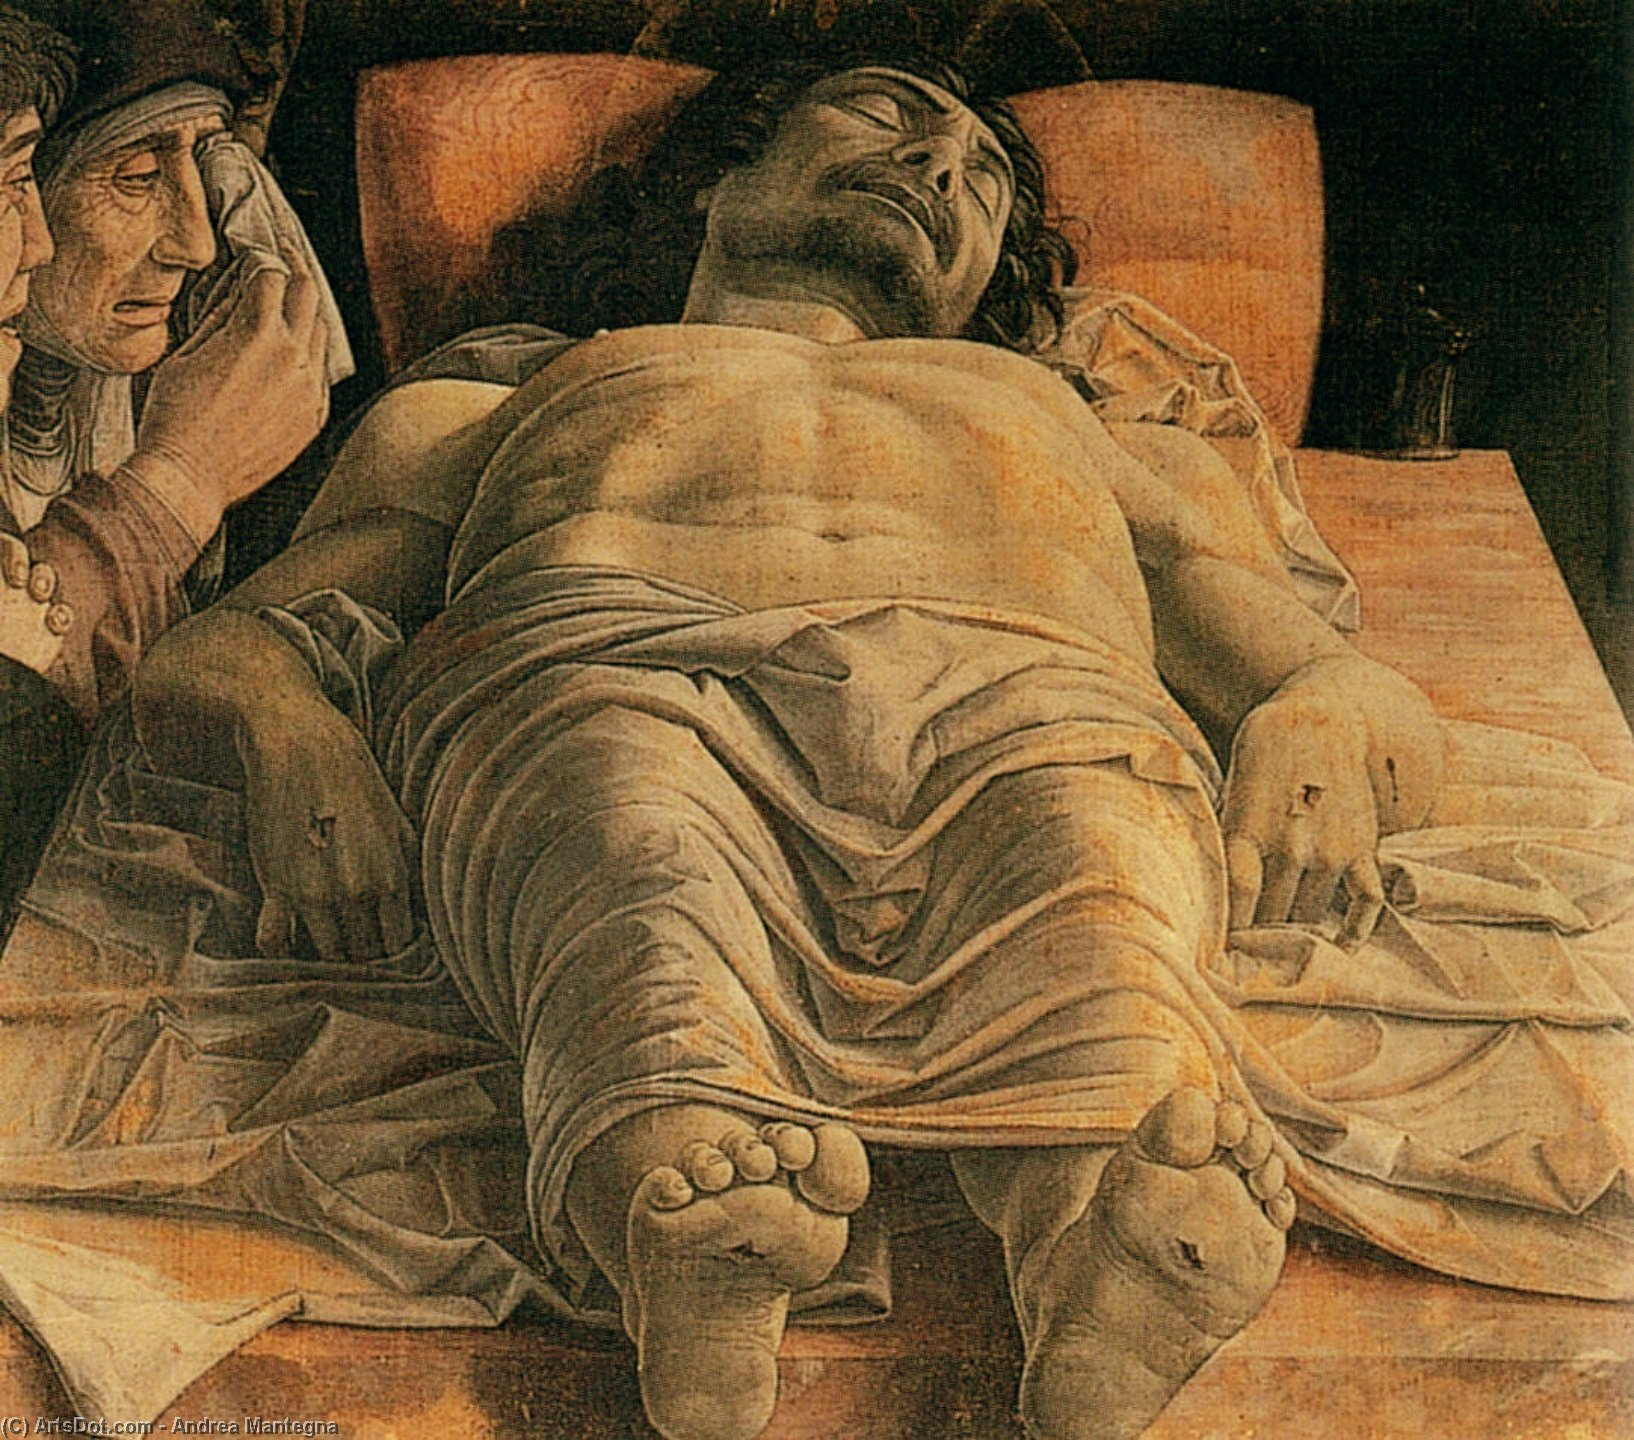 WikiOO.org - Encyclopedia of Fine Arts - Festés, Grafika Andrea Mantegna - The Lamentation over the Dead Christ